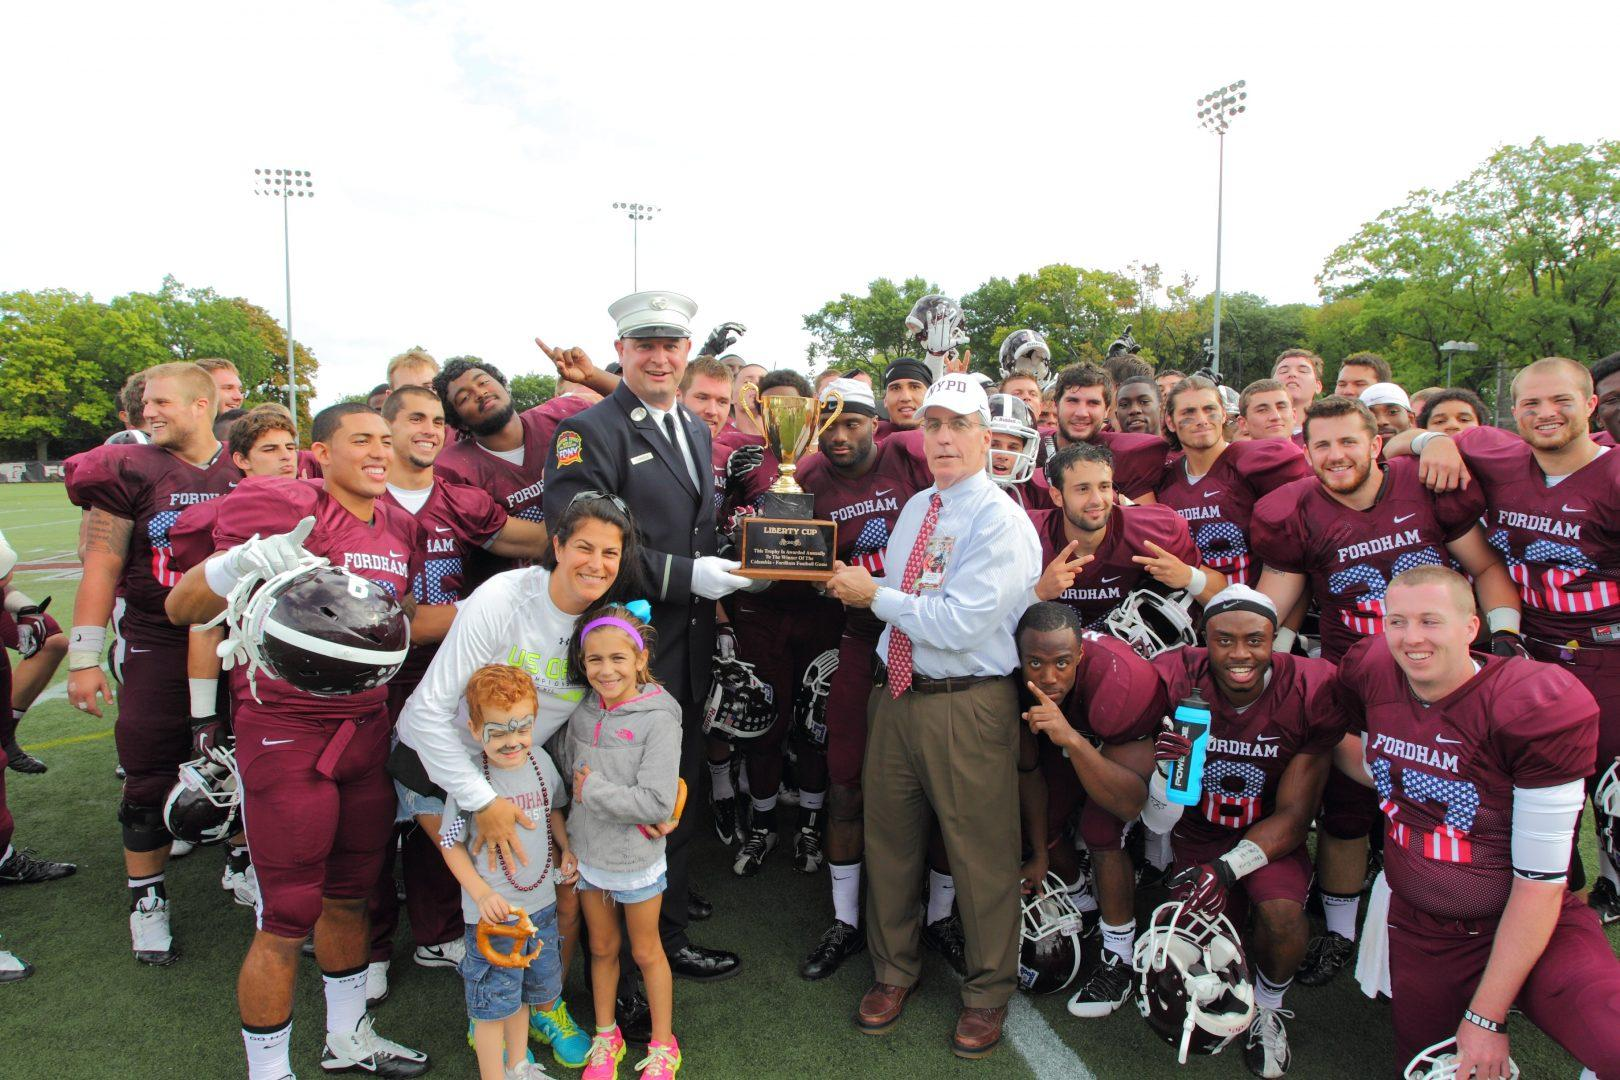 After winning the Liberty Cup against Columbia, Fordham improved to 5-0 by beating Saint Francis Courtesy of Fordham sports